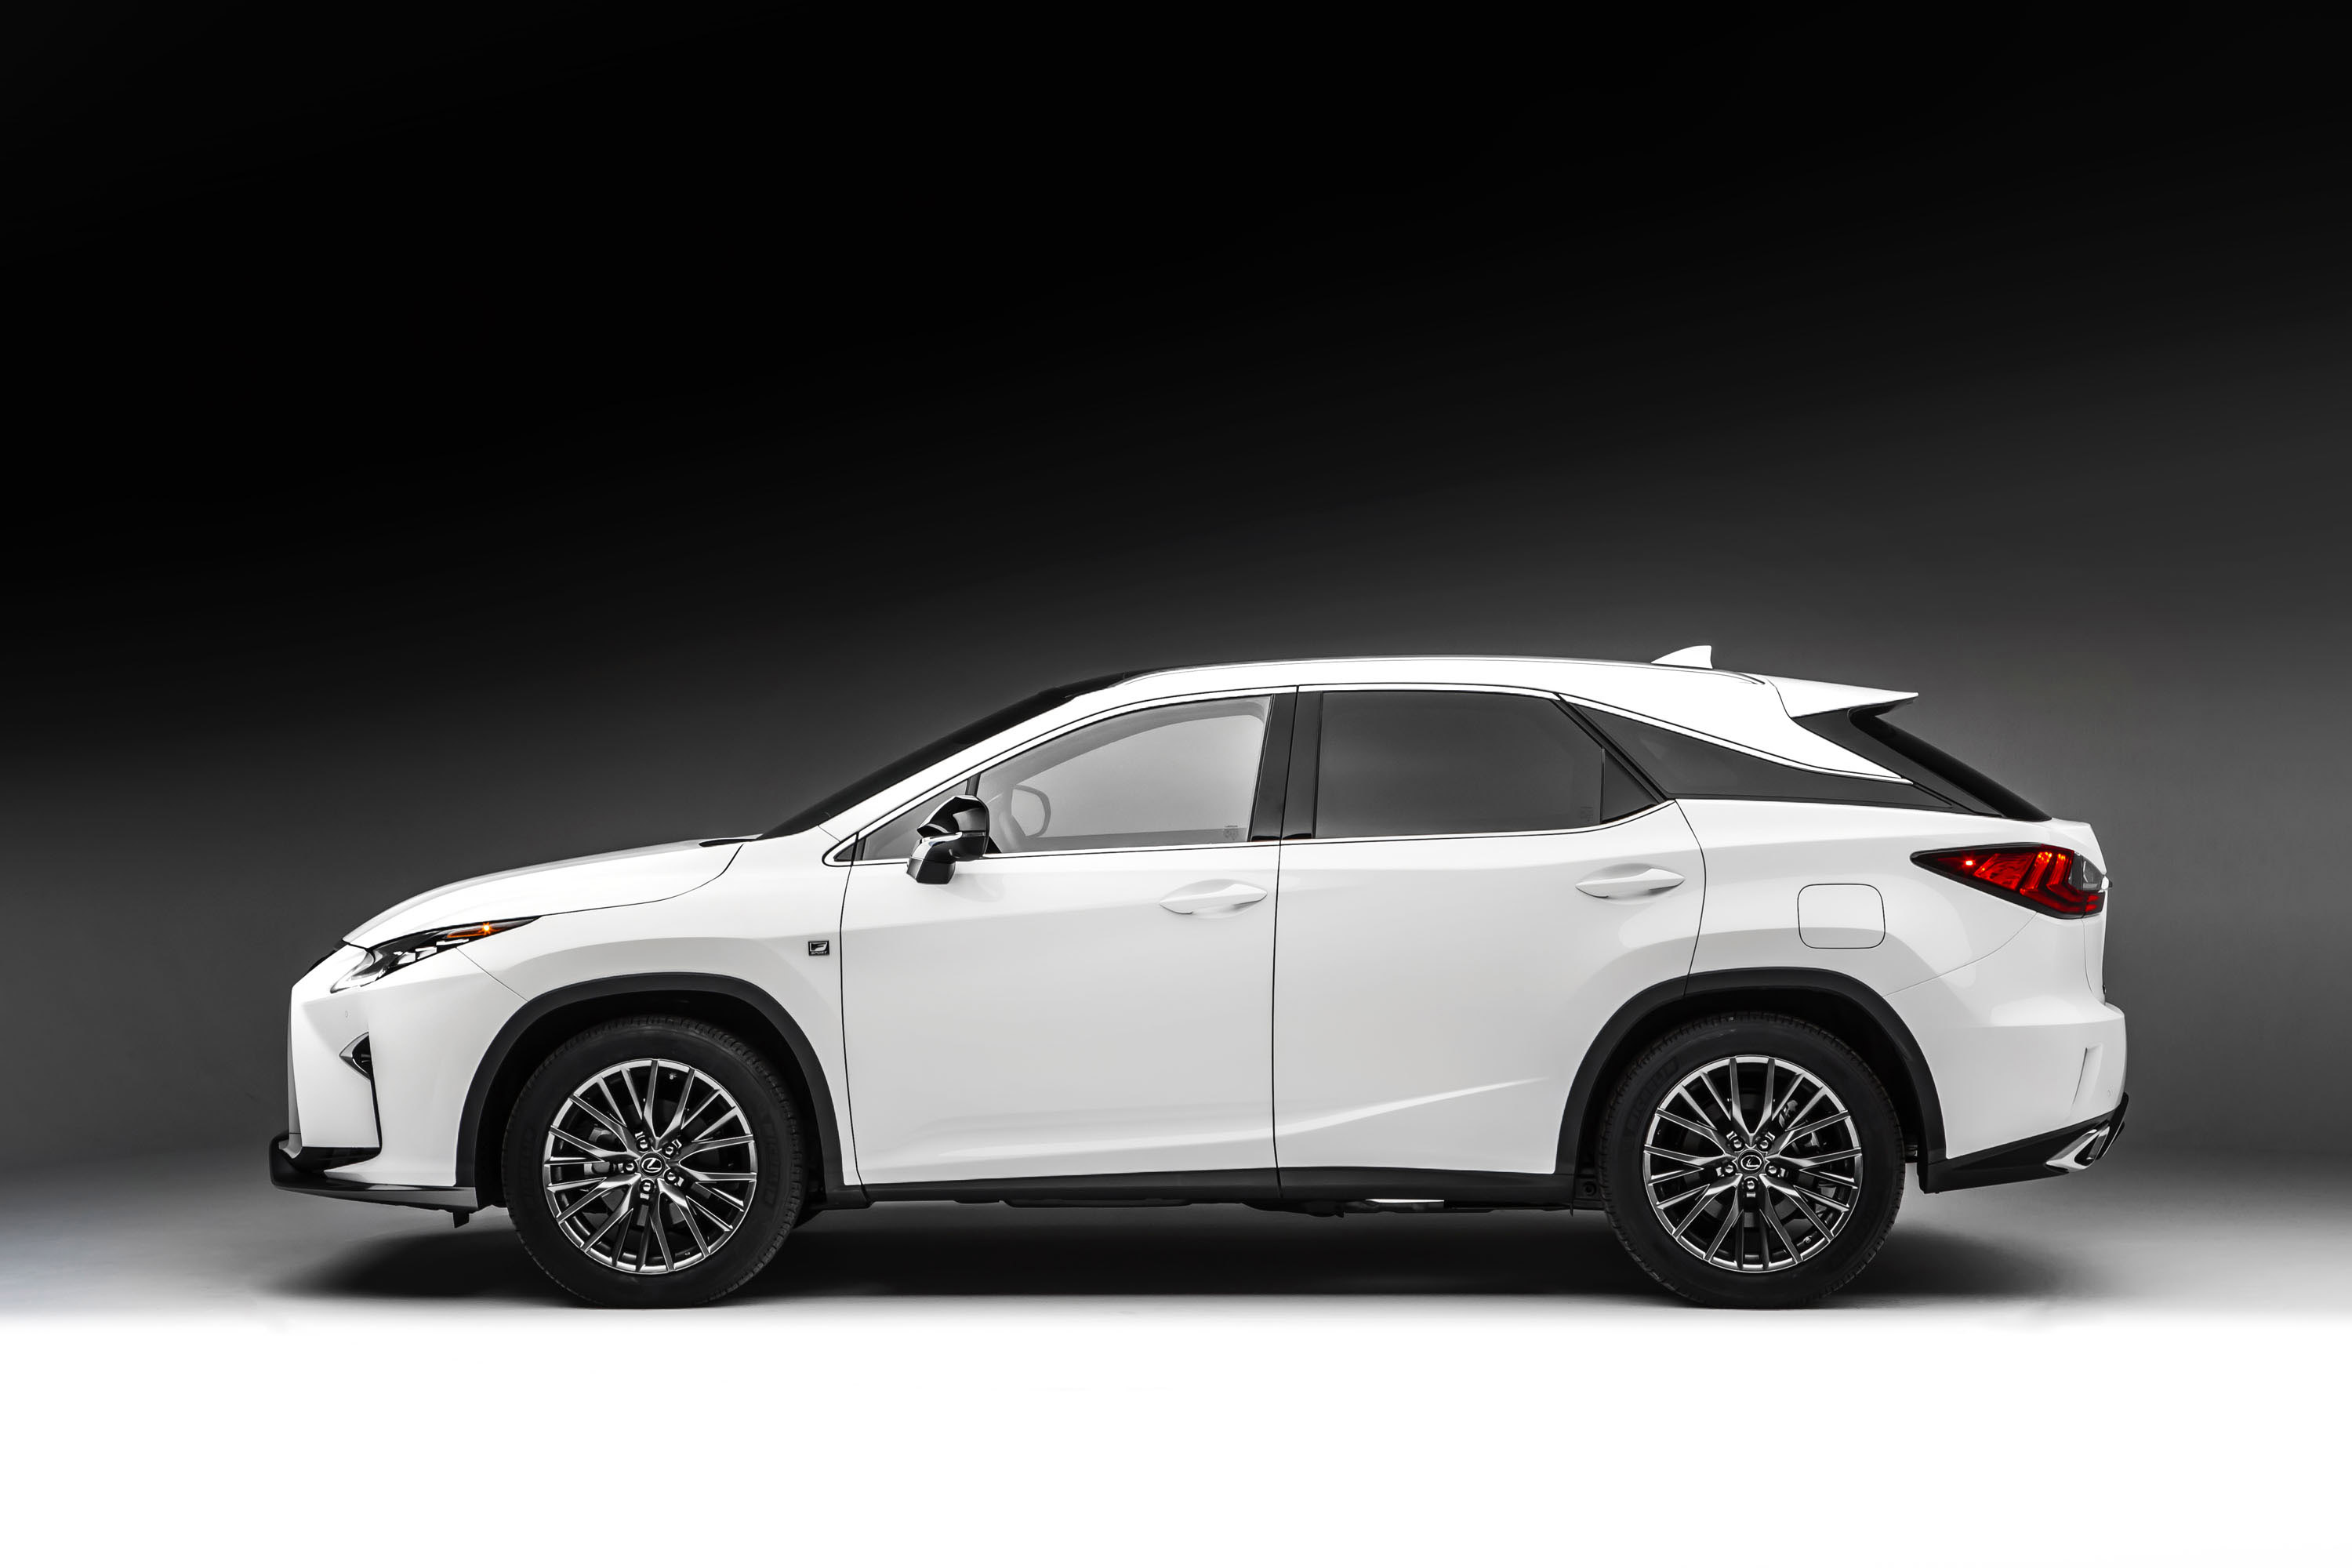 2016 lexus rx. Black Bedroom Furniture Sets. Home Design Ideas